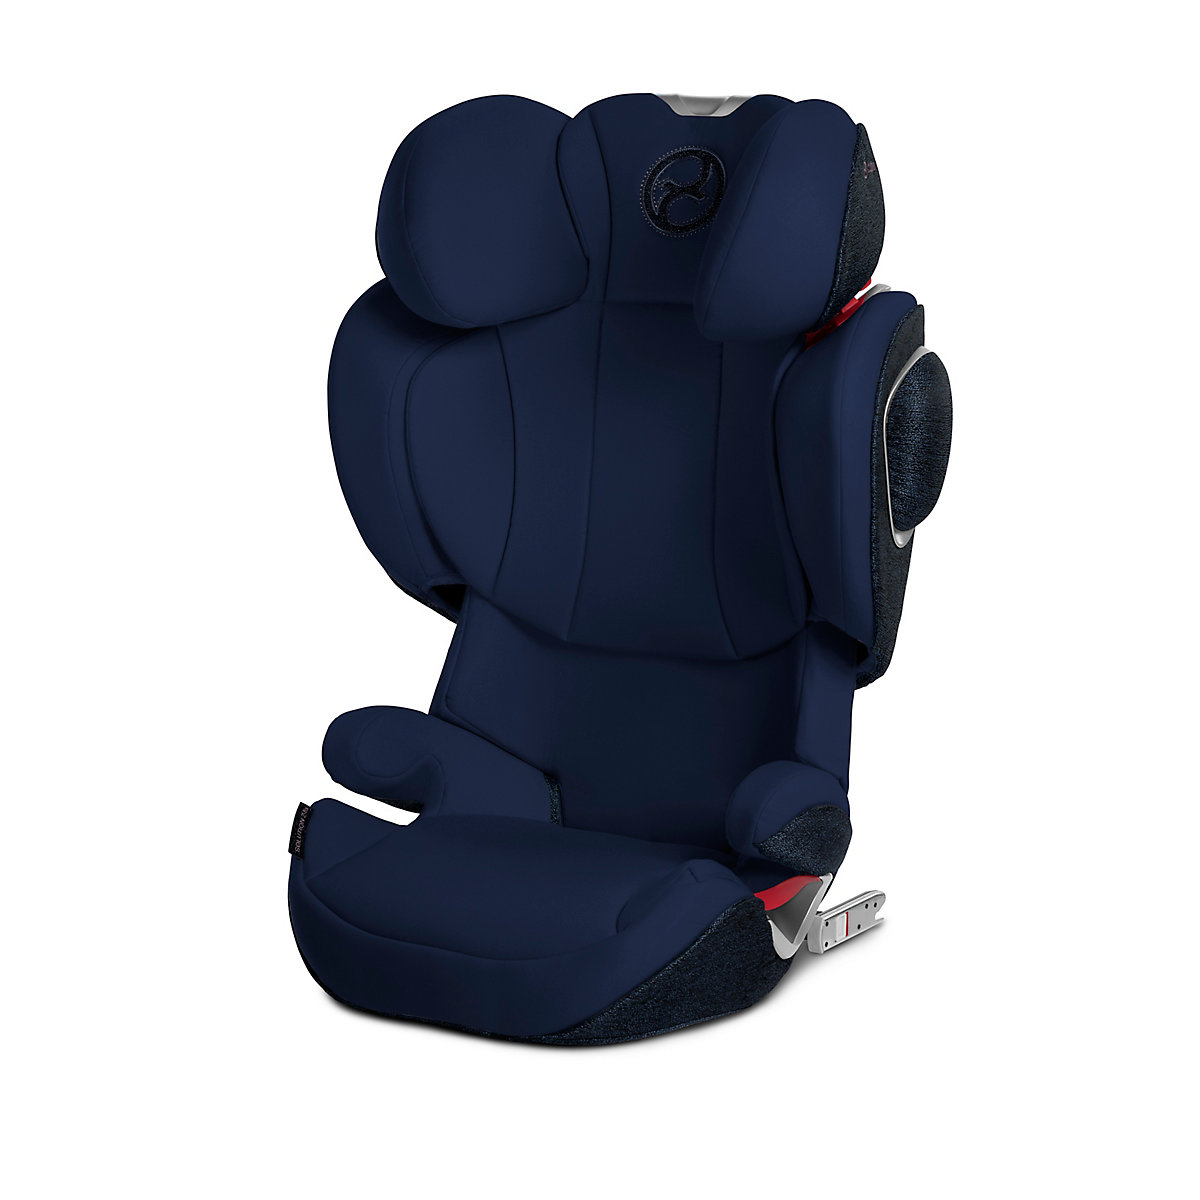 Cybex solution z fix highback booster - midnight blue